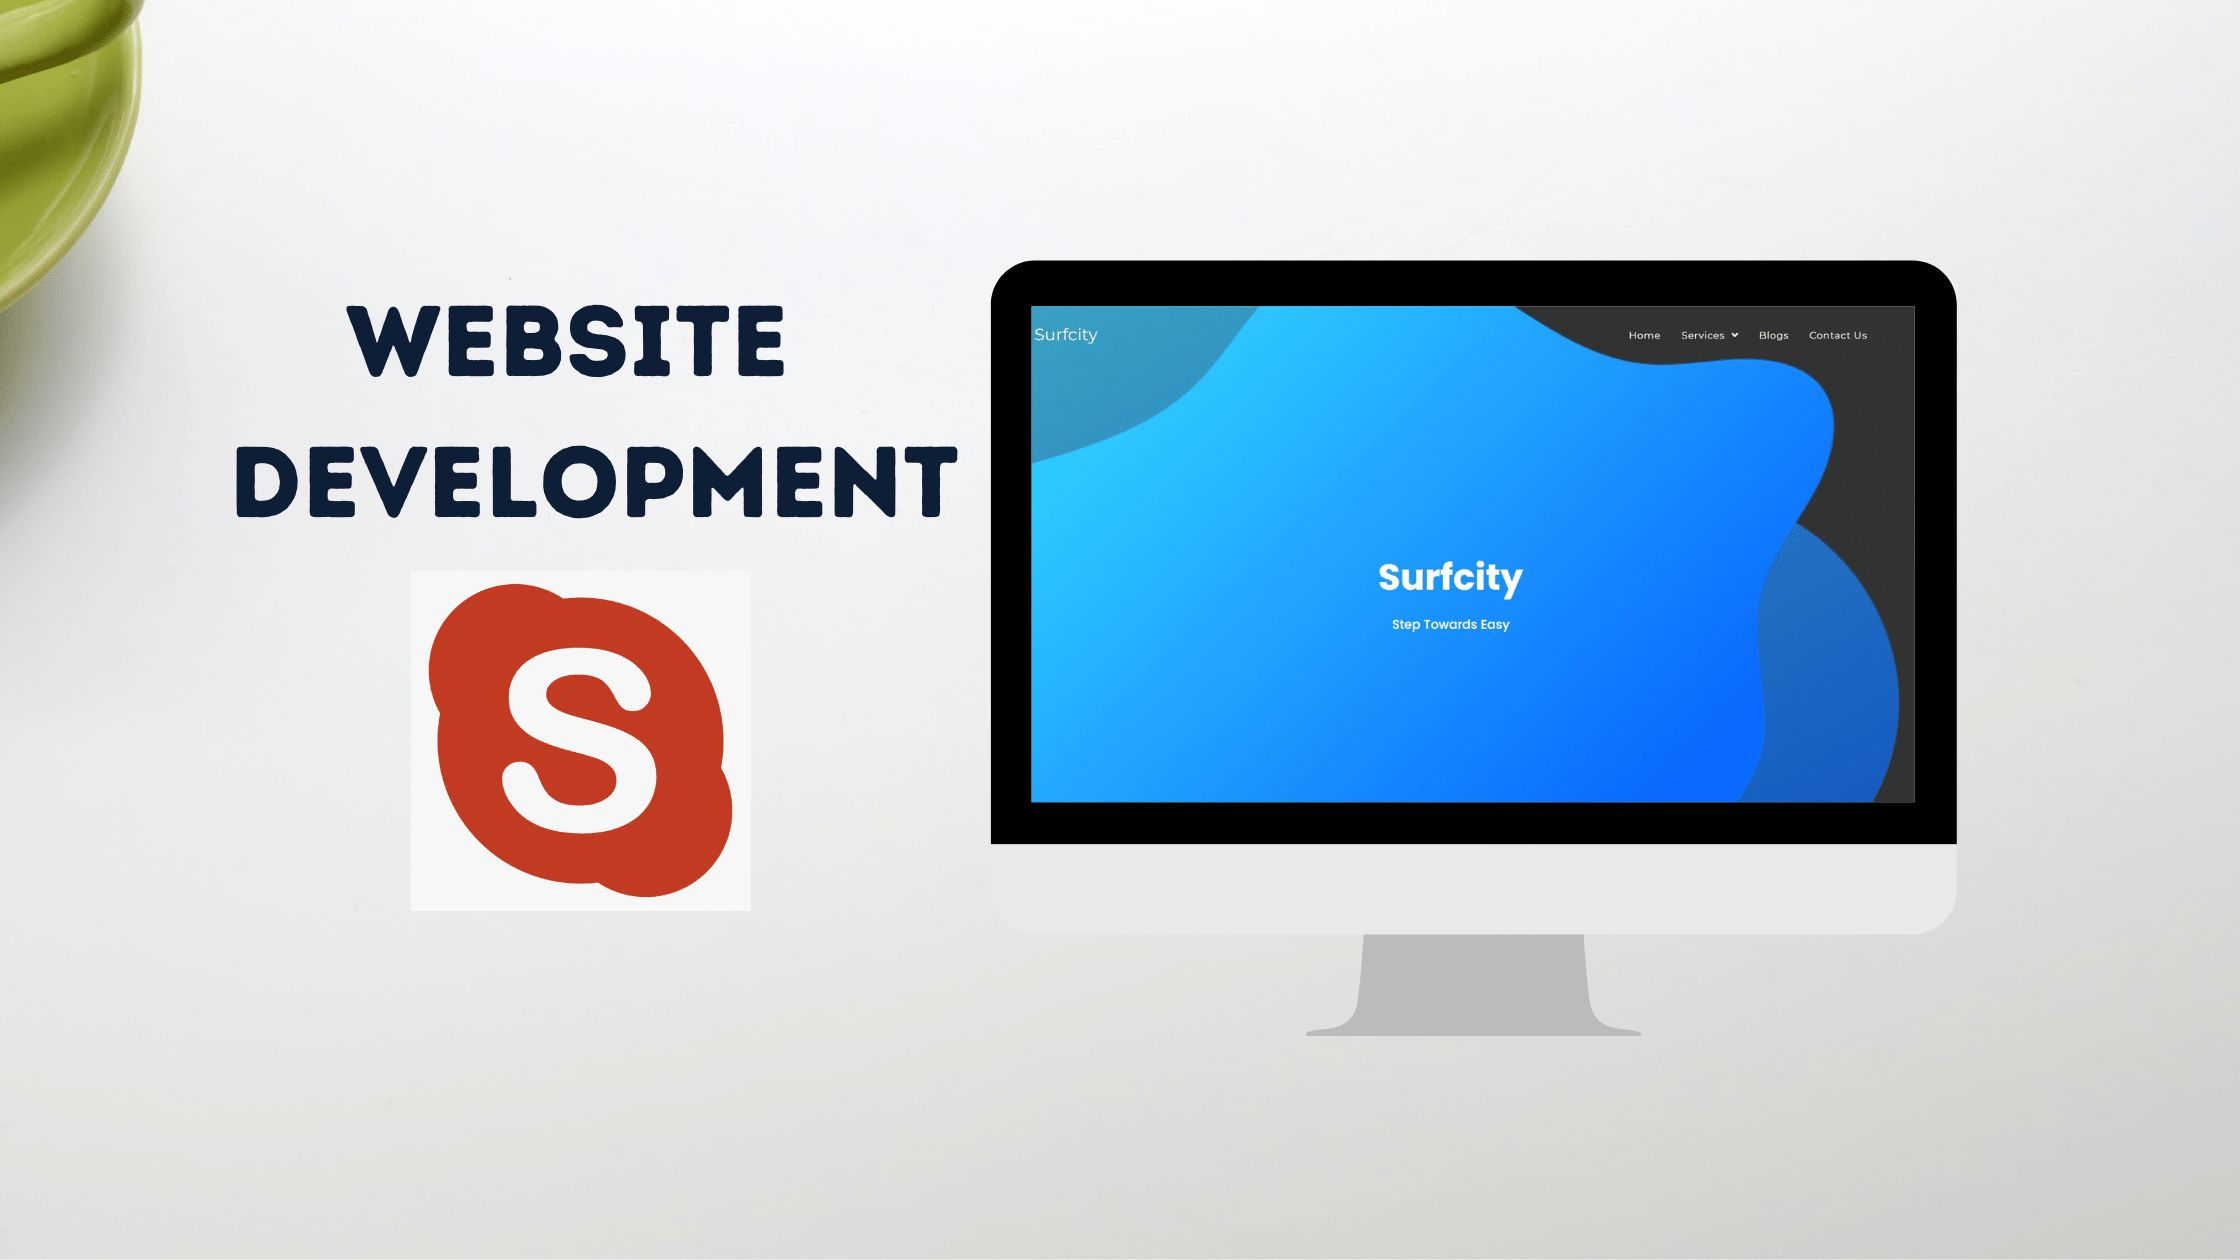 Surfcity website development featured image